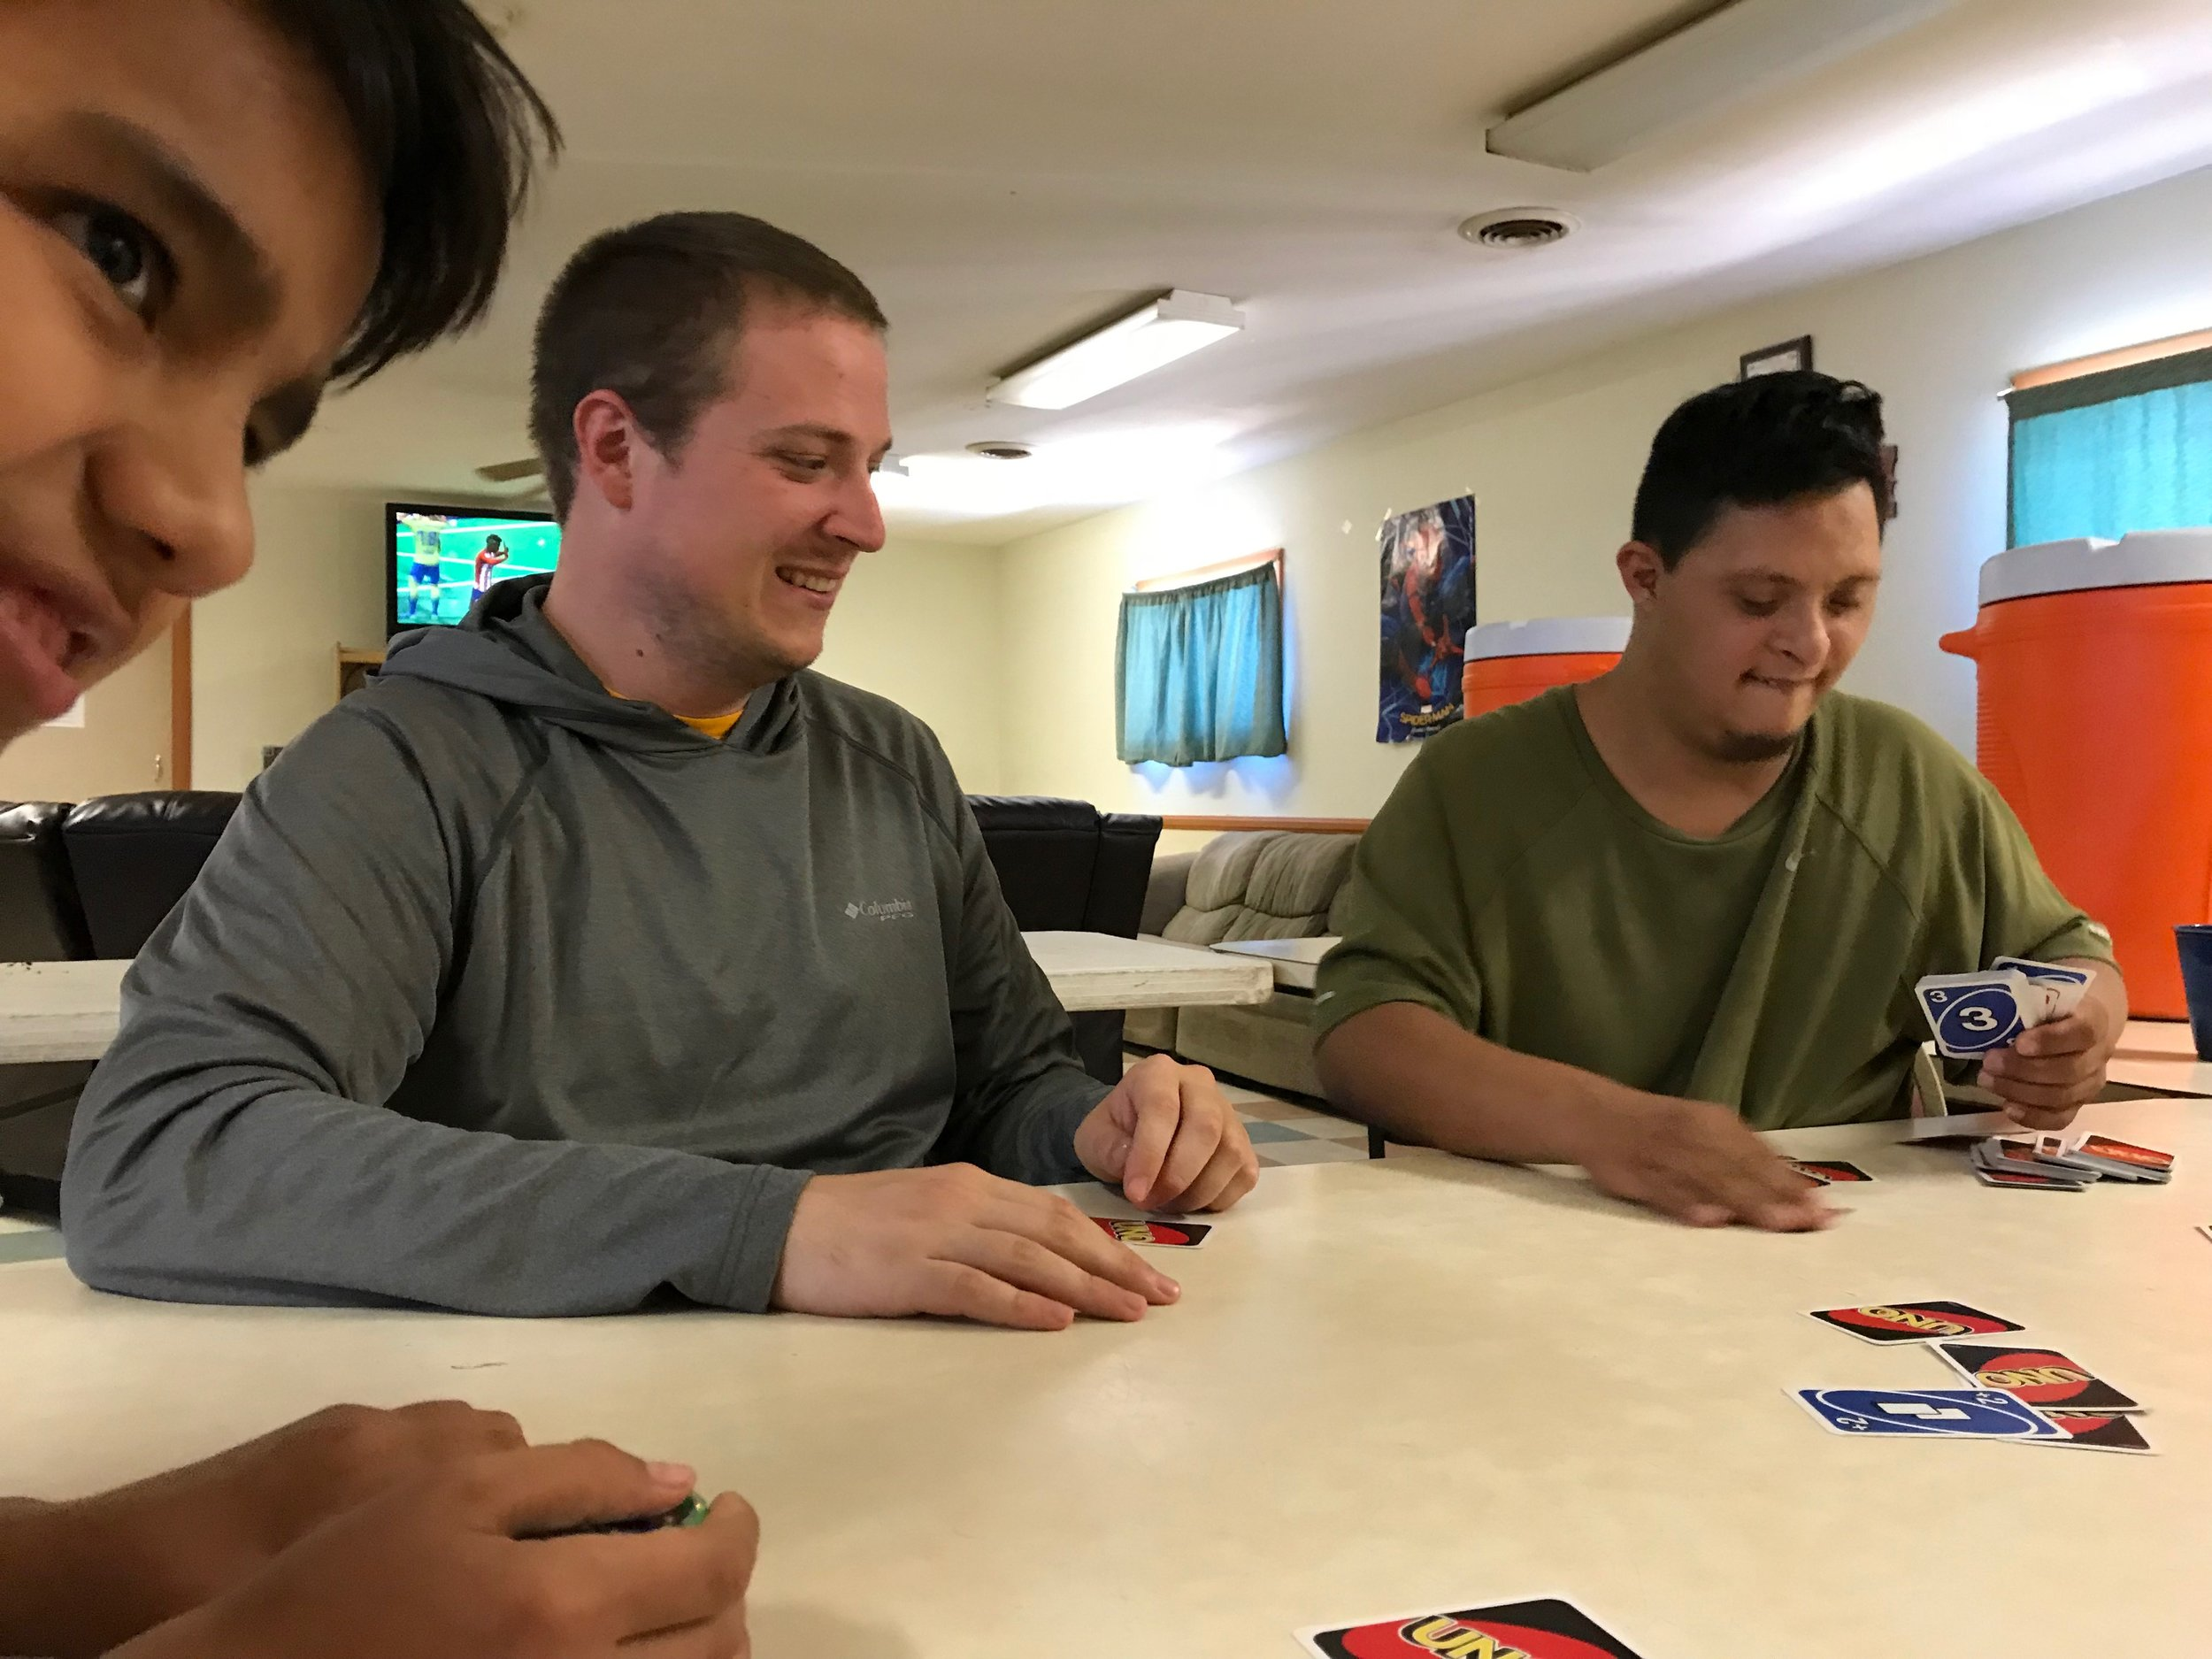 Ryan playing cards with the boys